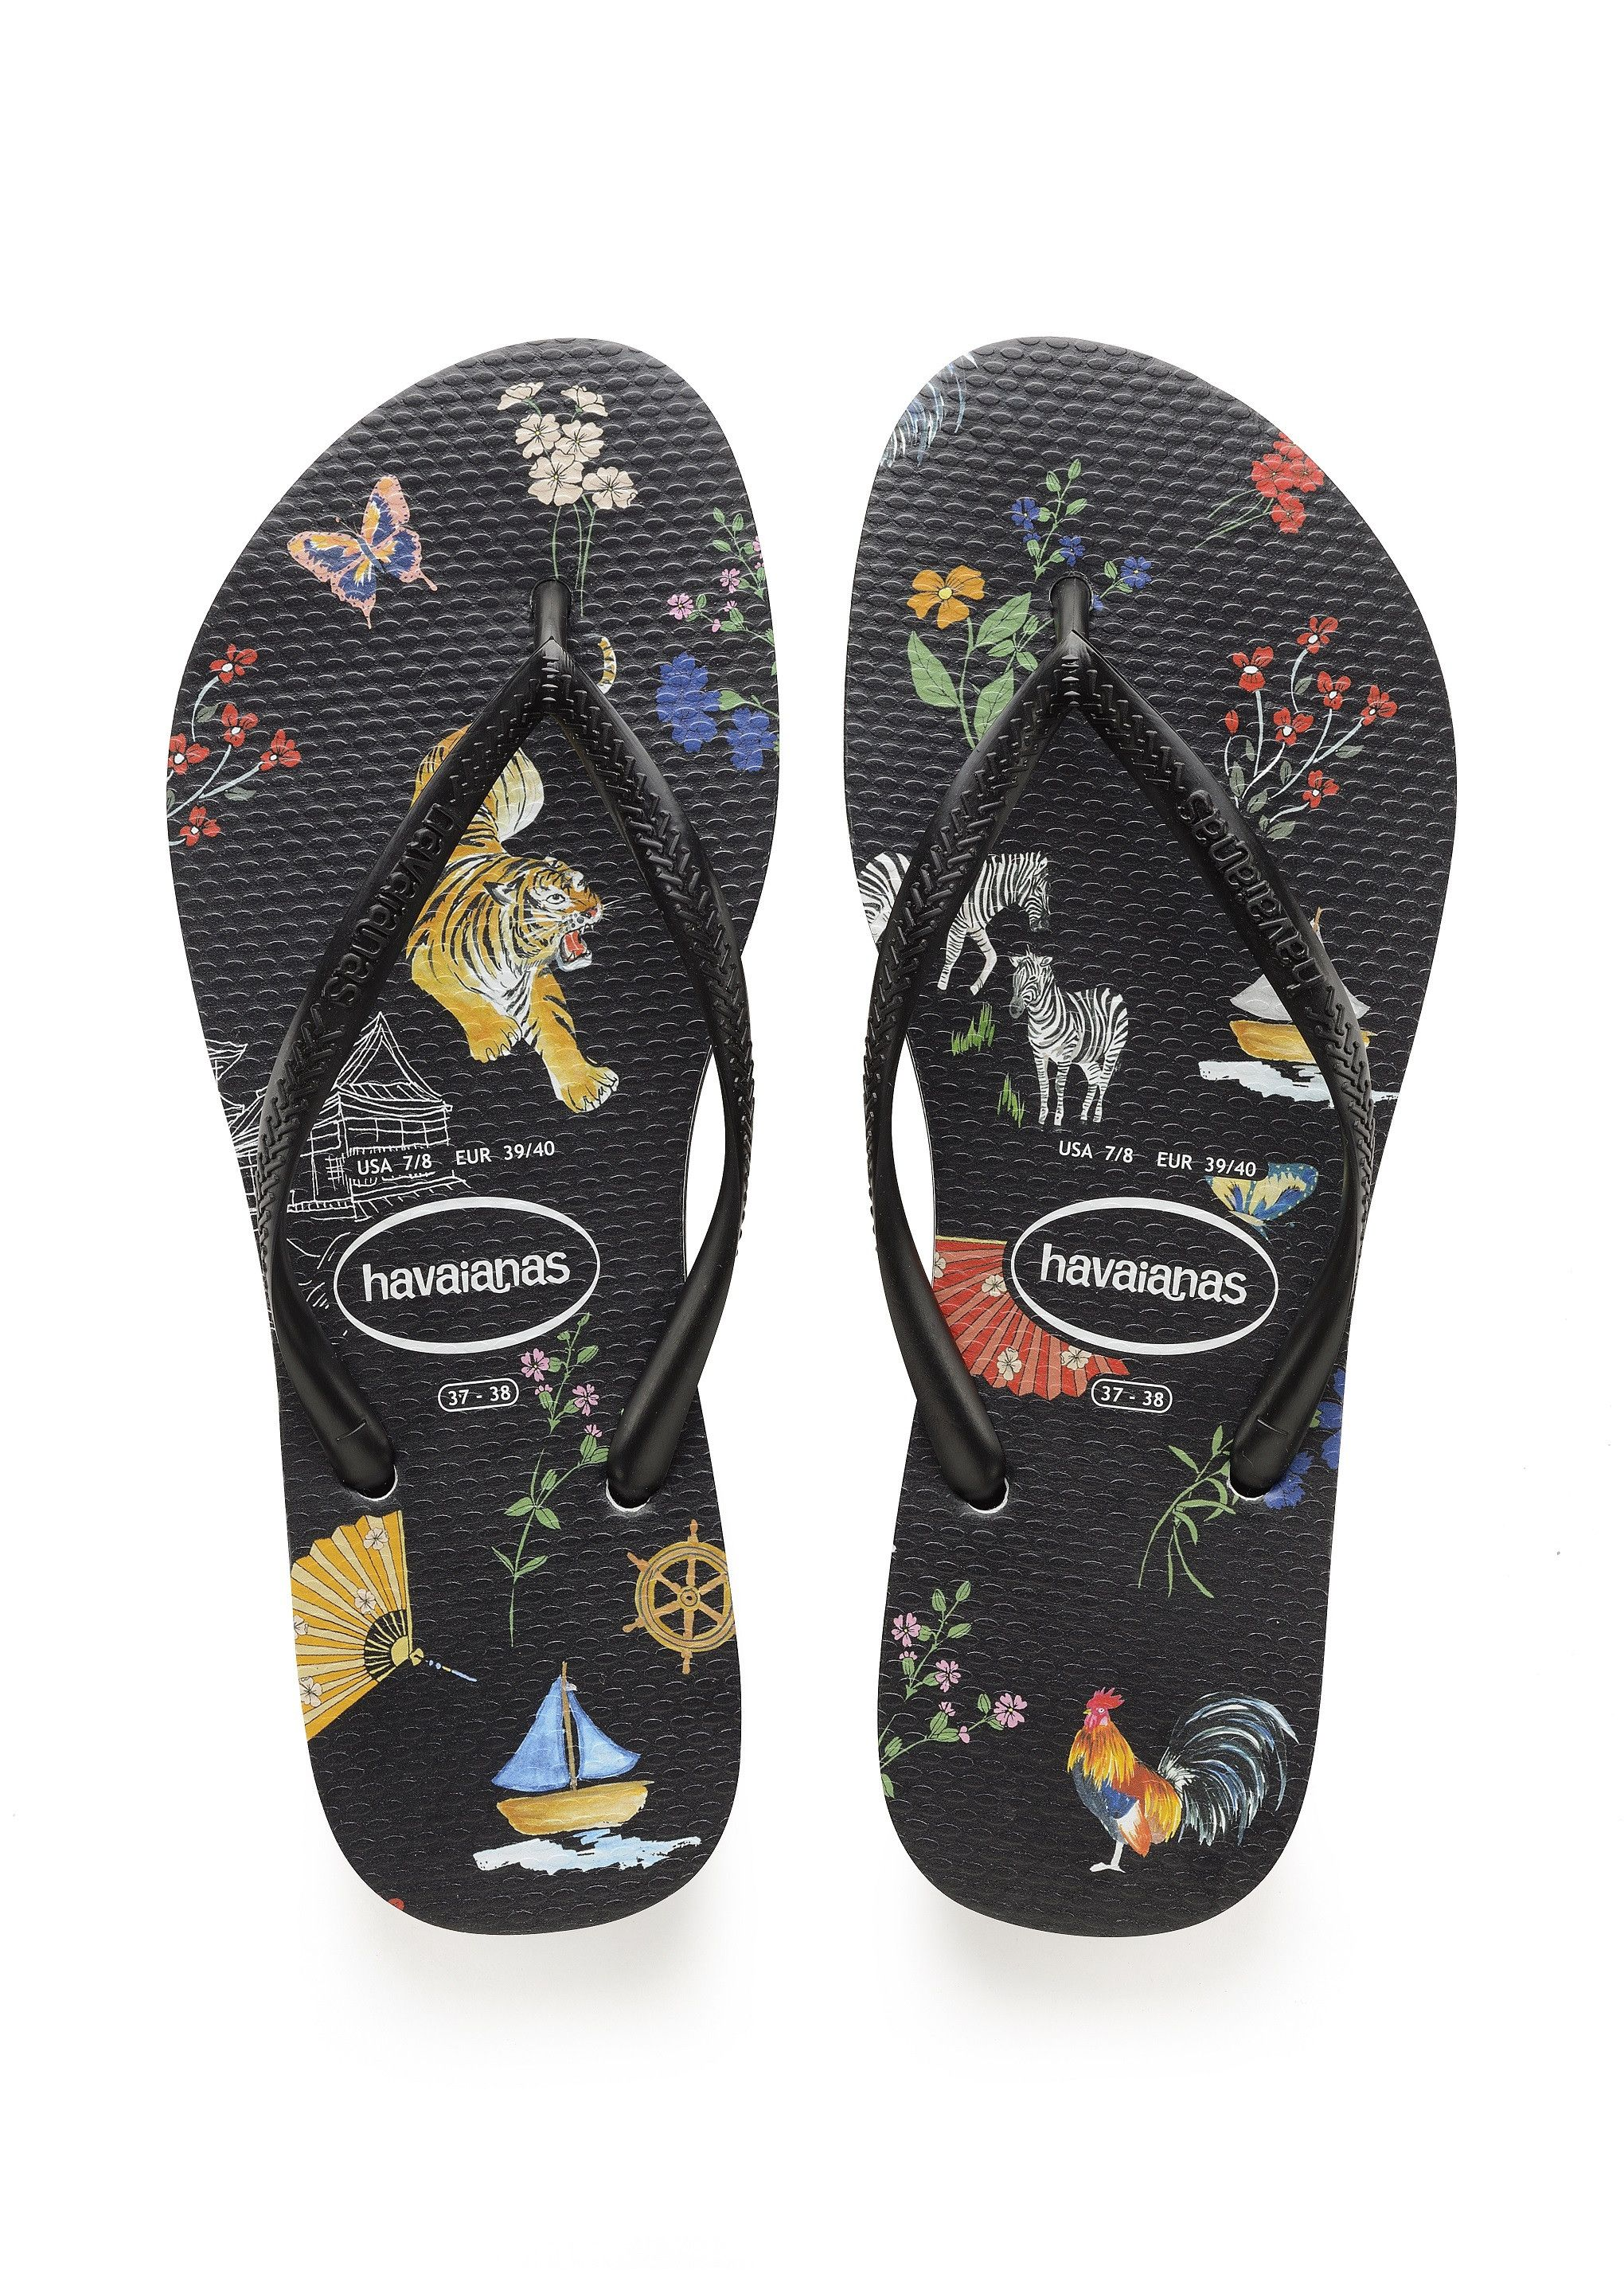 4fdef26f1ca287 Shoes Sandals · Havaianas Slim Wild Sandal Black Price From  NZ 39.61  https   flopstore.